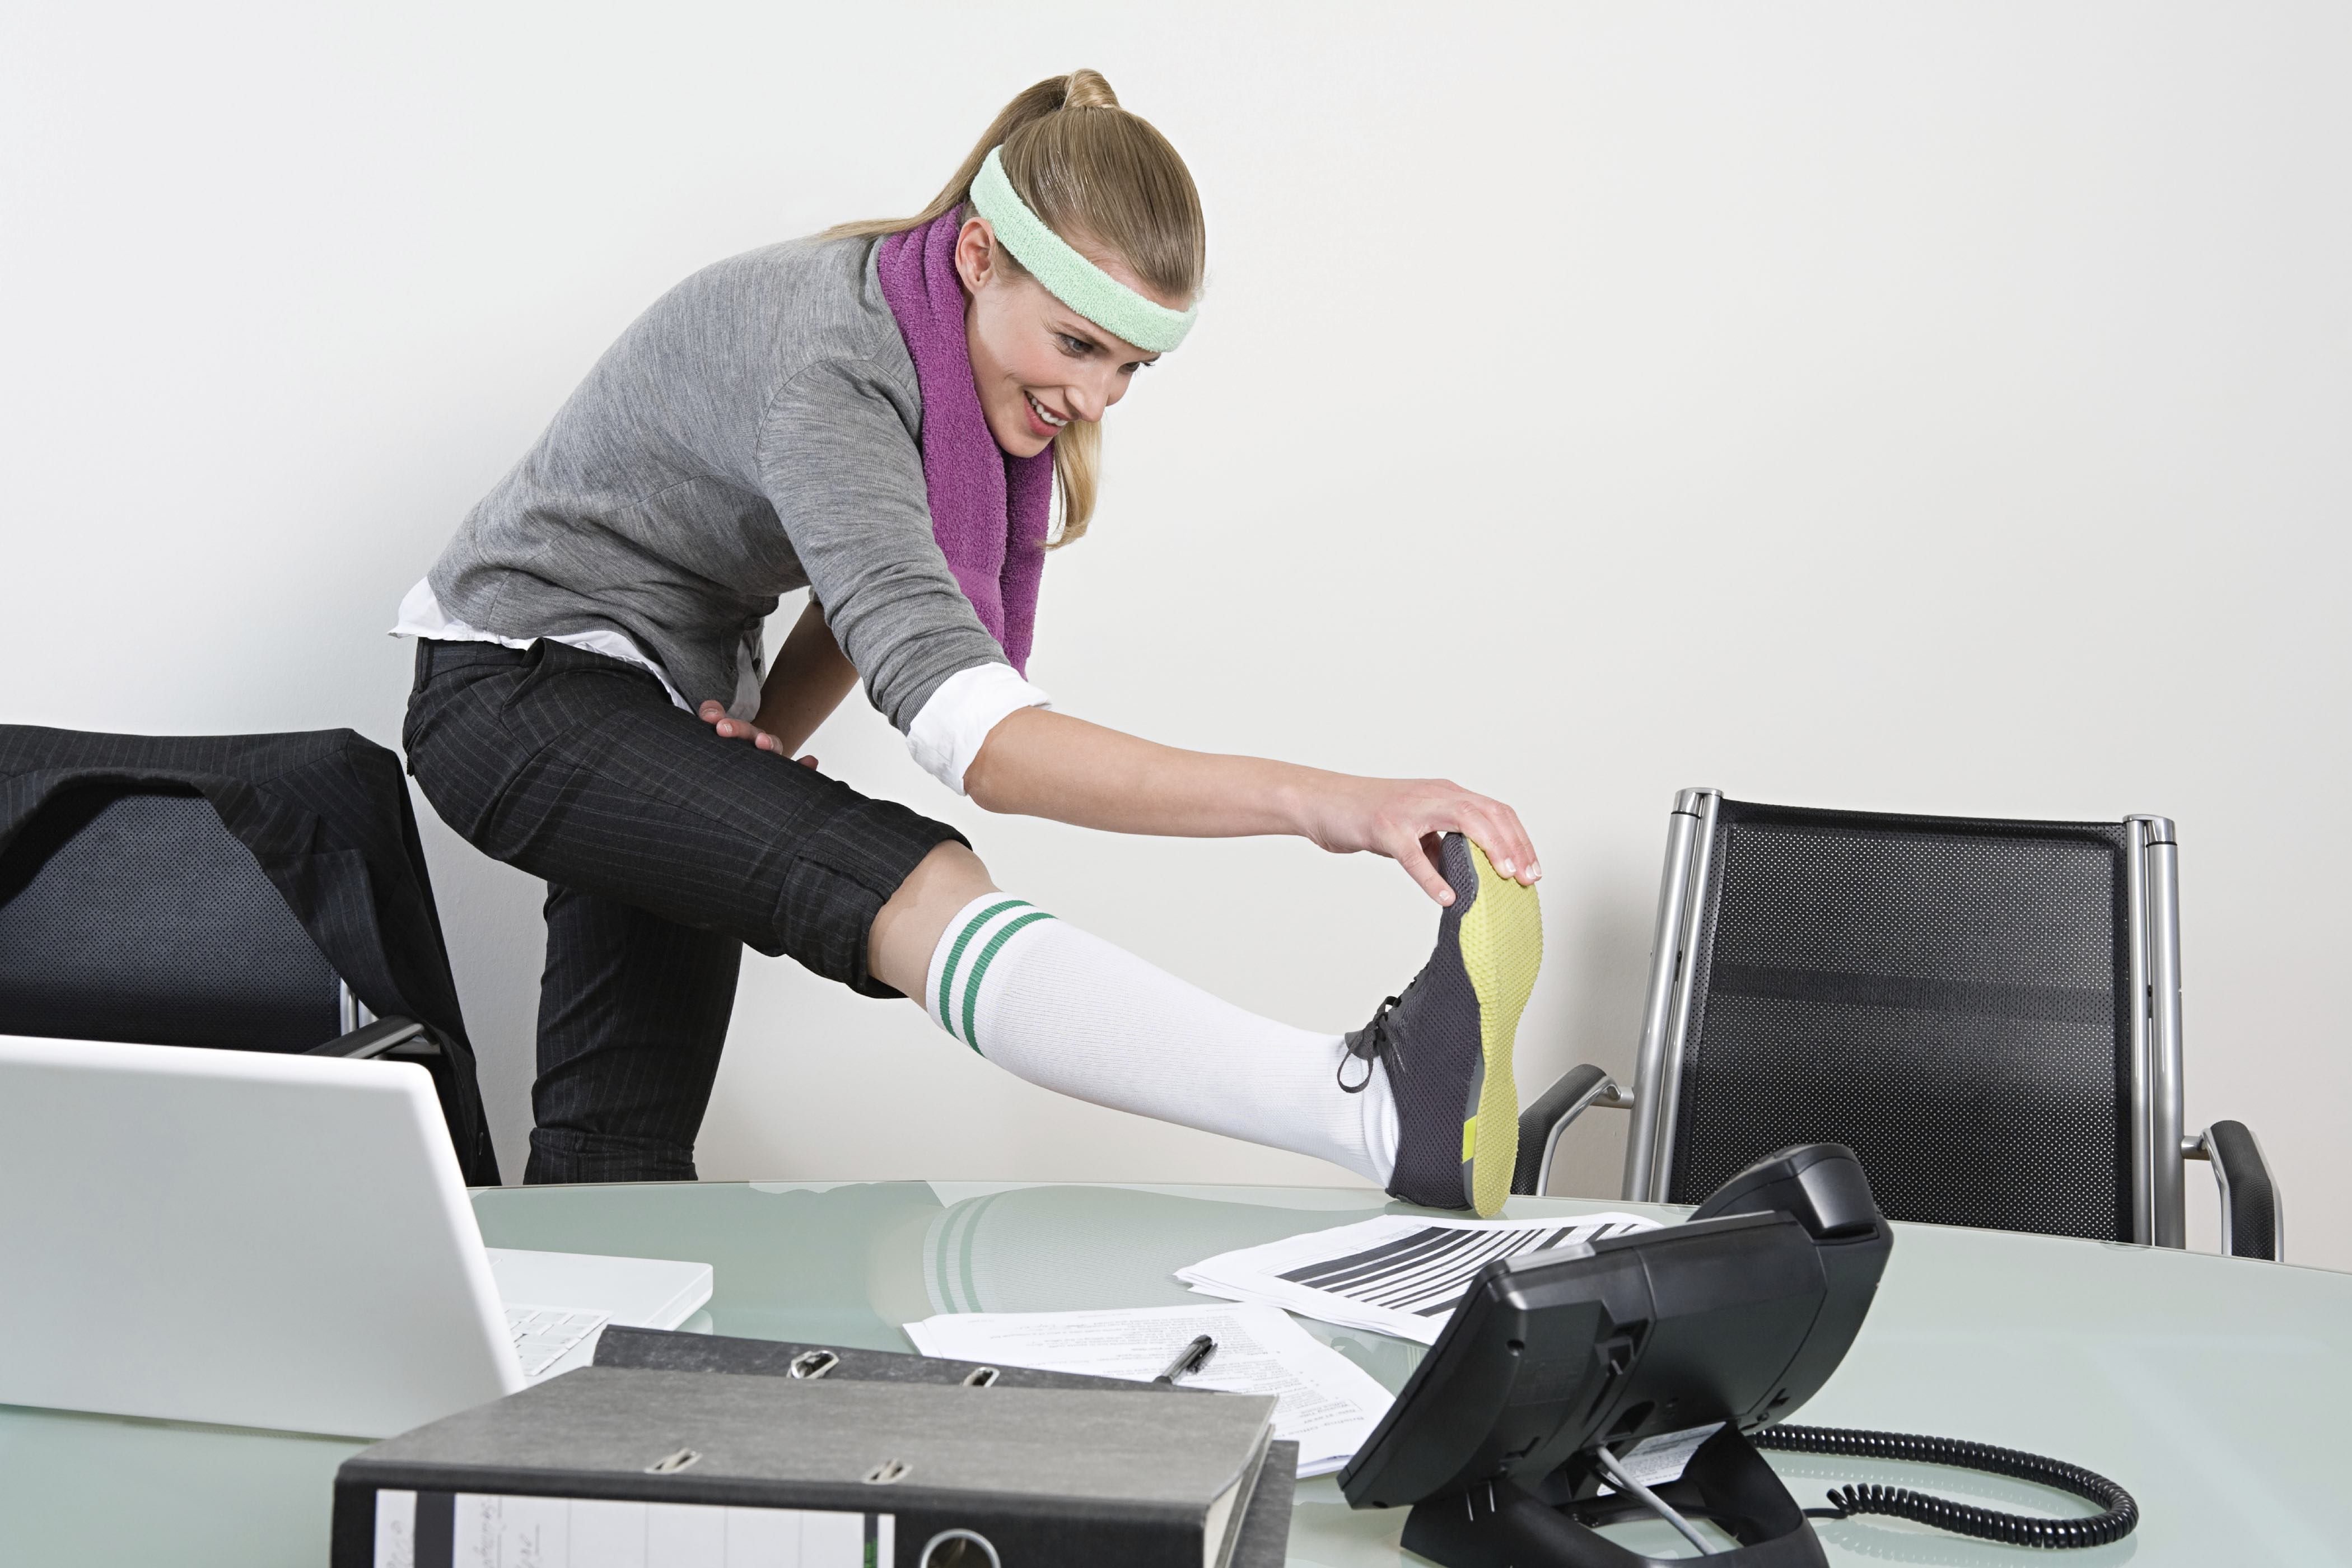 Checklist for Stretch at Work